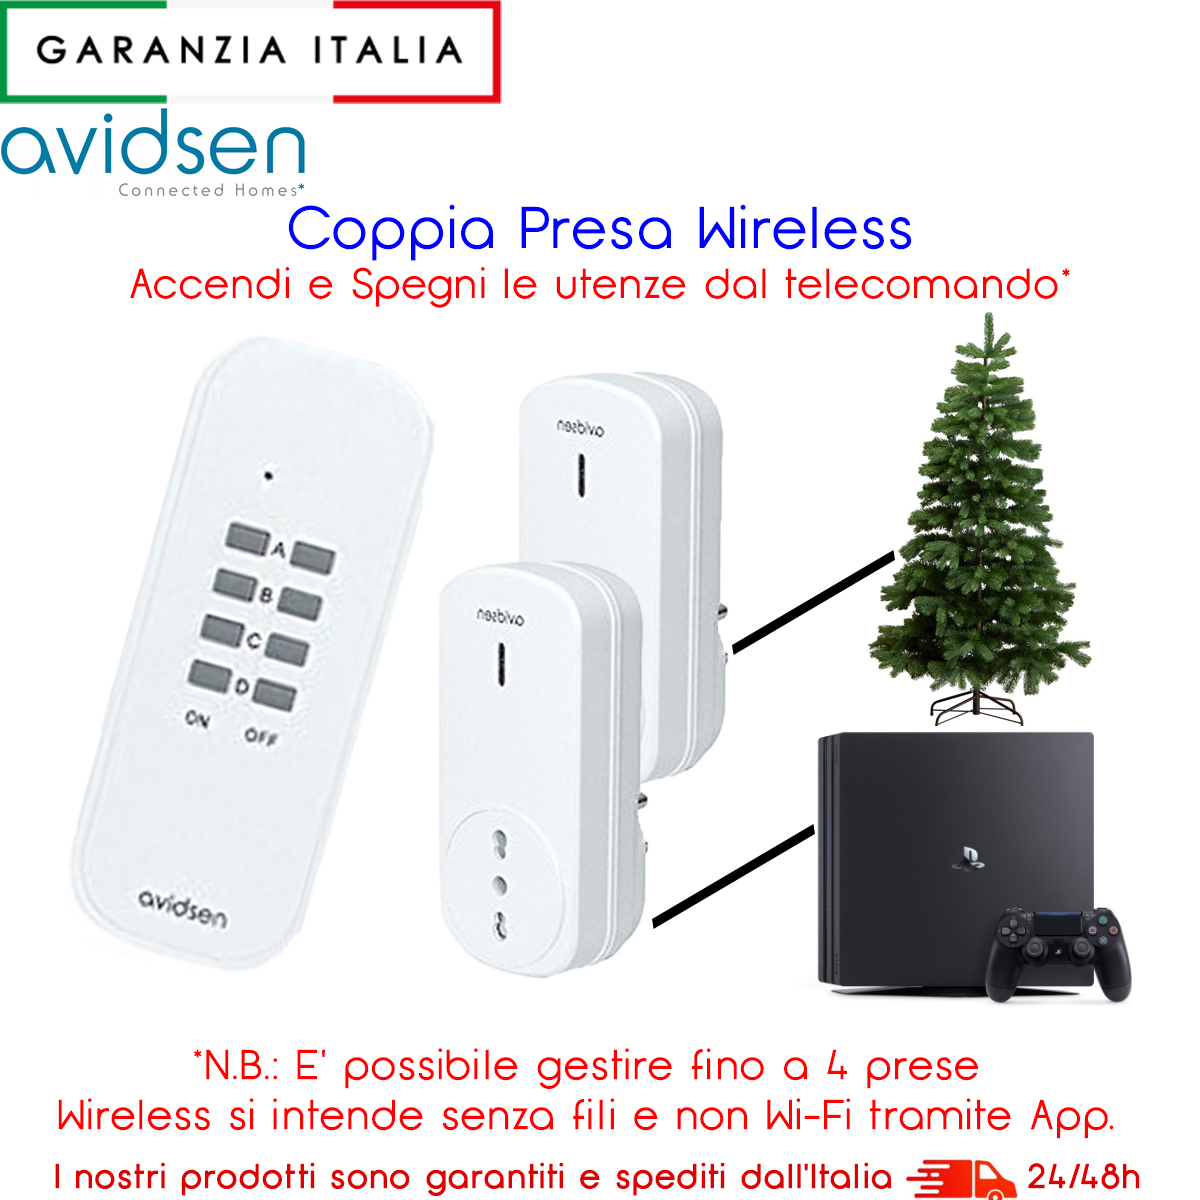 KIT DUE PRESE DI ALIMENTAZIONE TELECOMANDATE CON TELECOMANDO WIRELESS INCLUSO